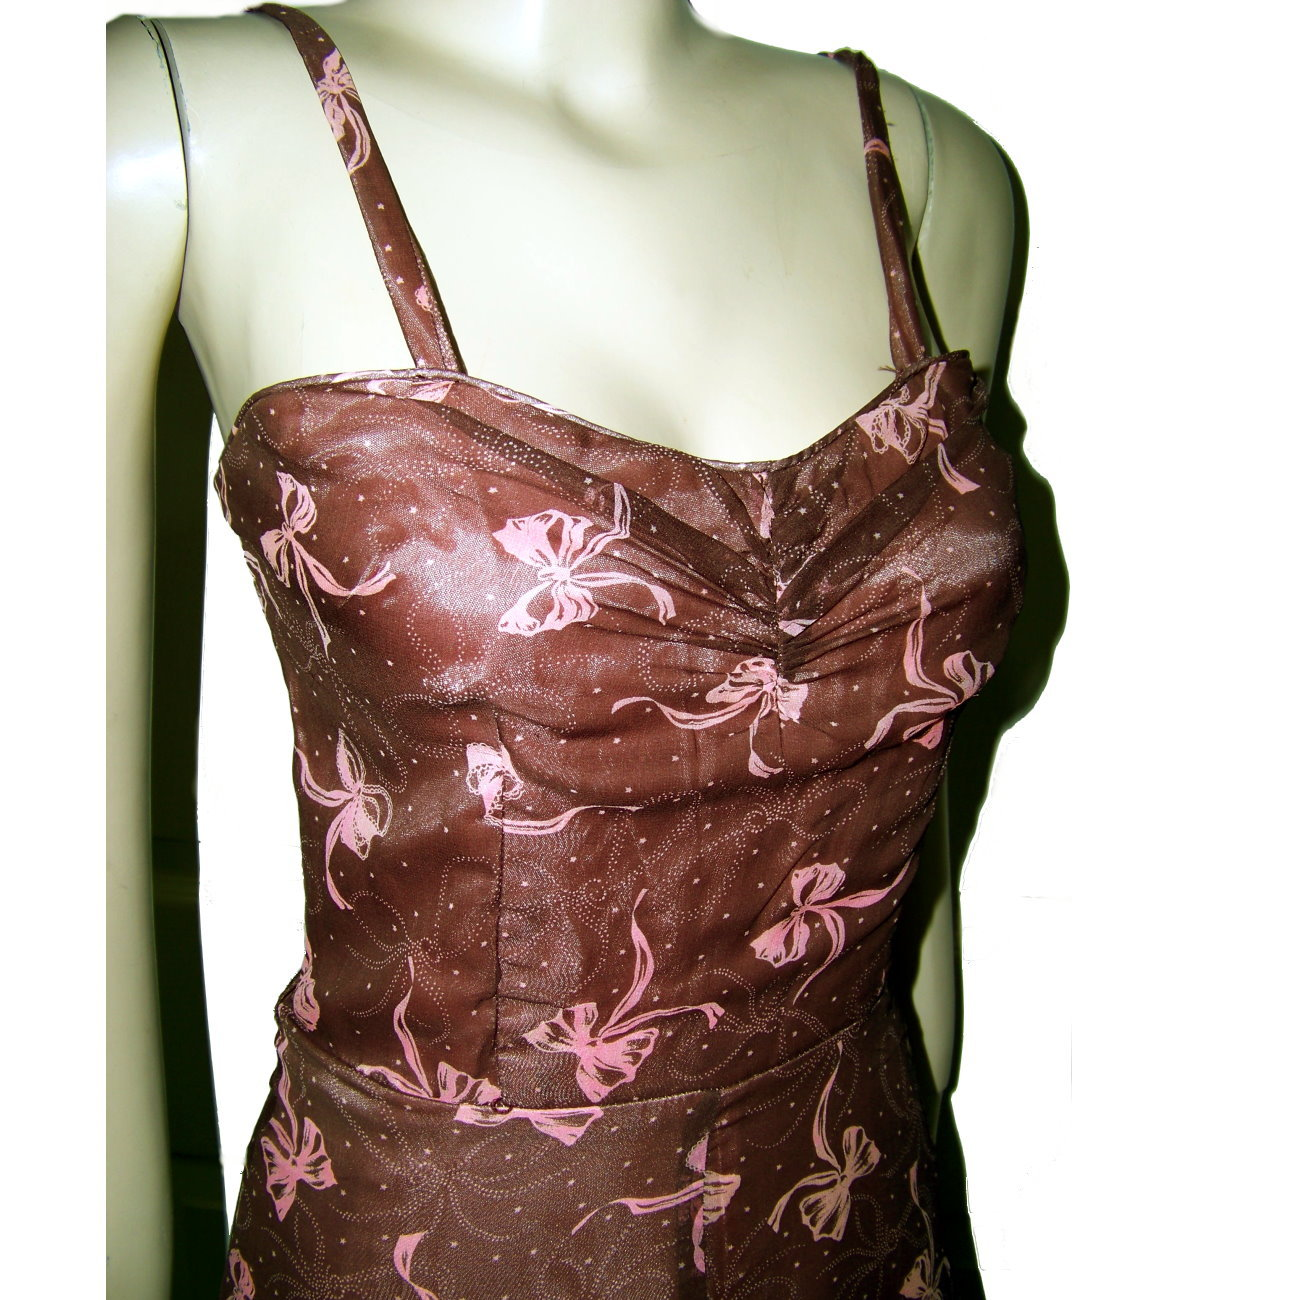 40s retro sundress brown nylon over pink with bows so cute XS